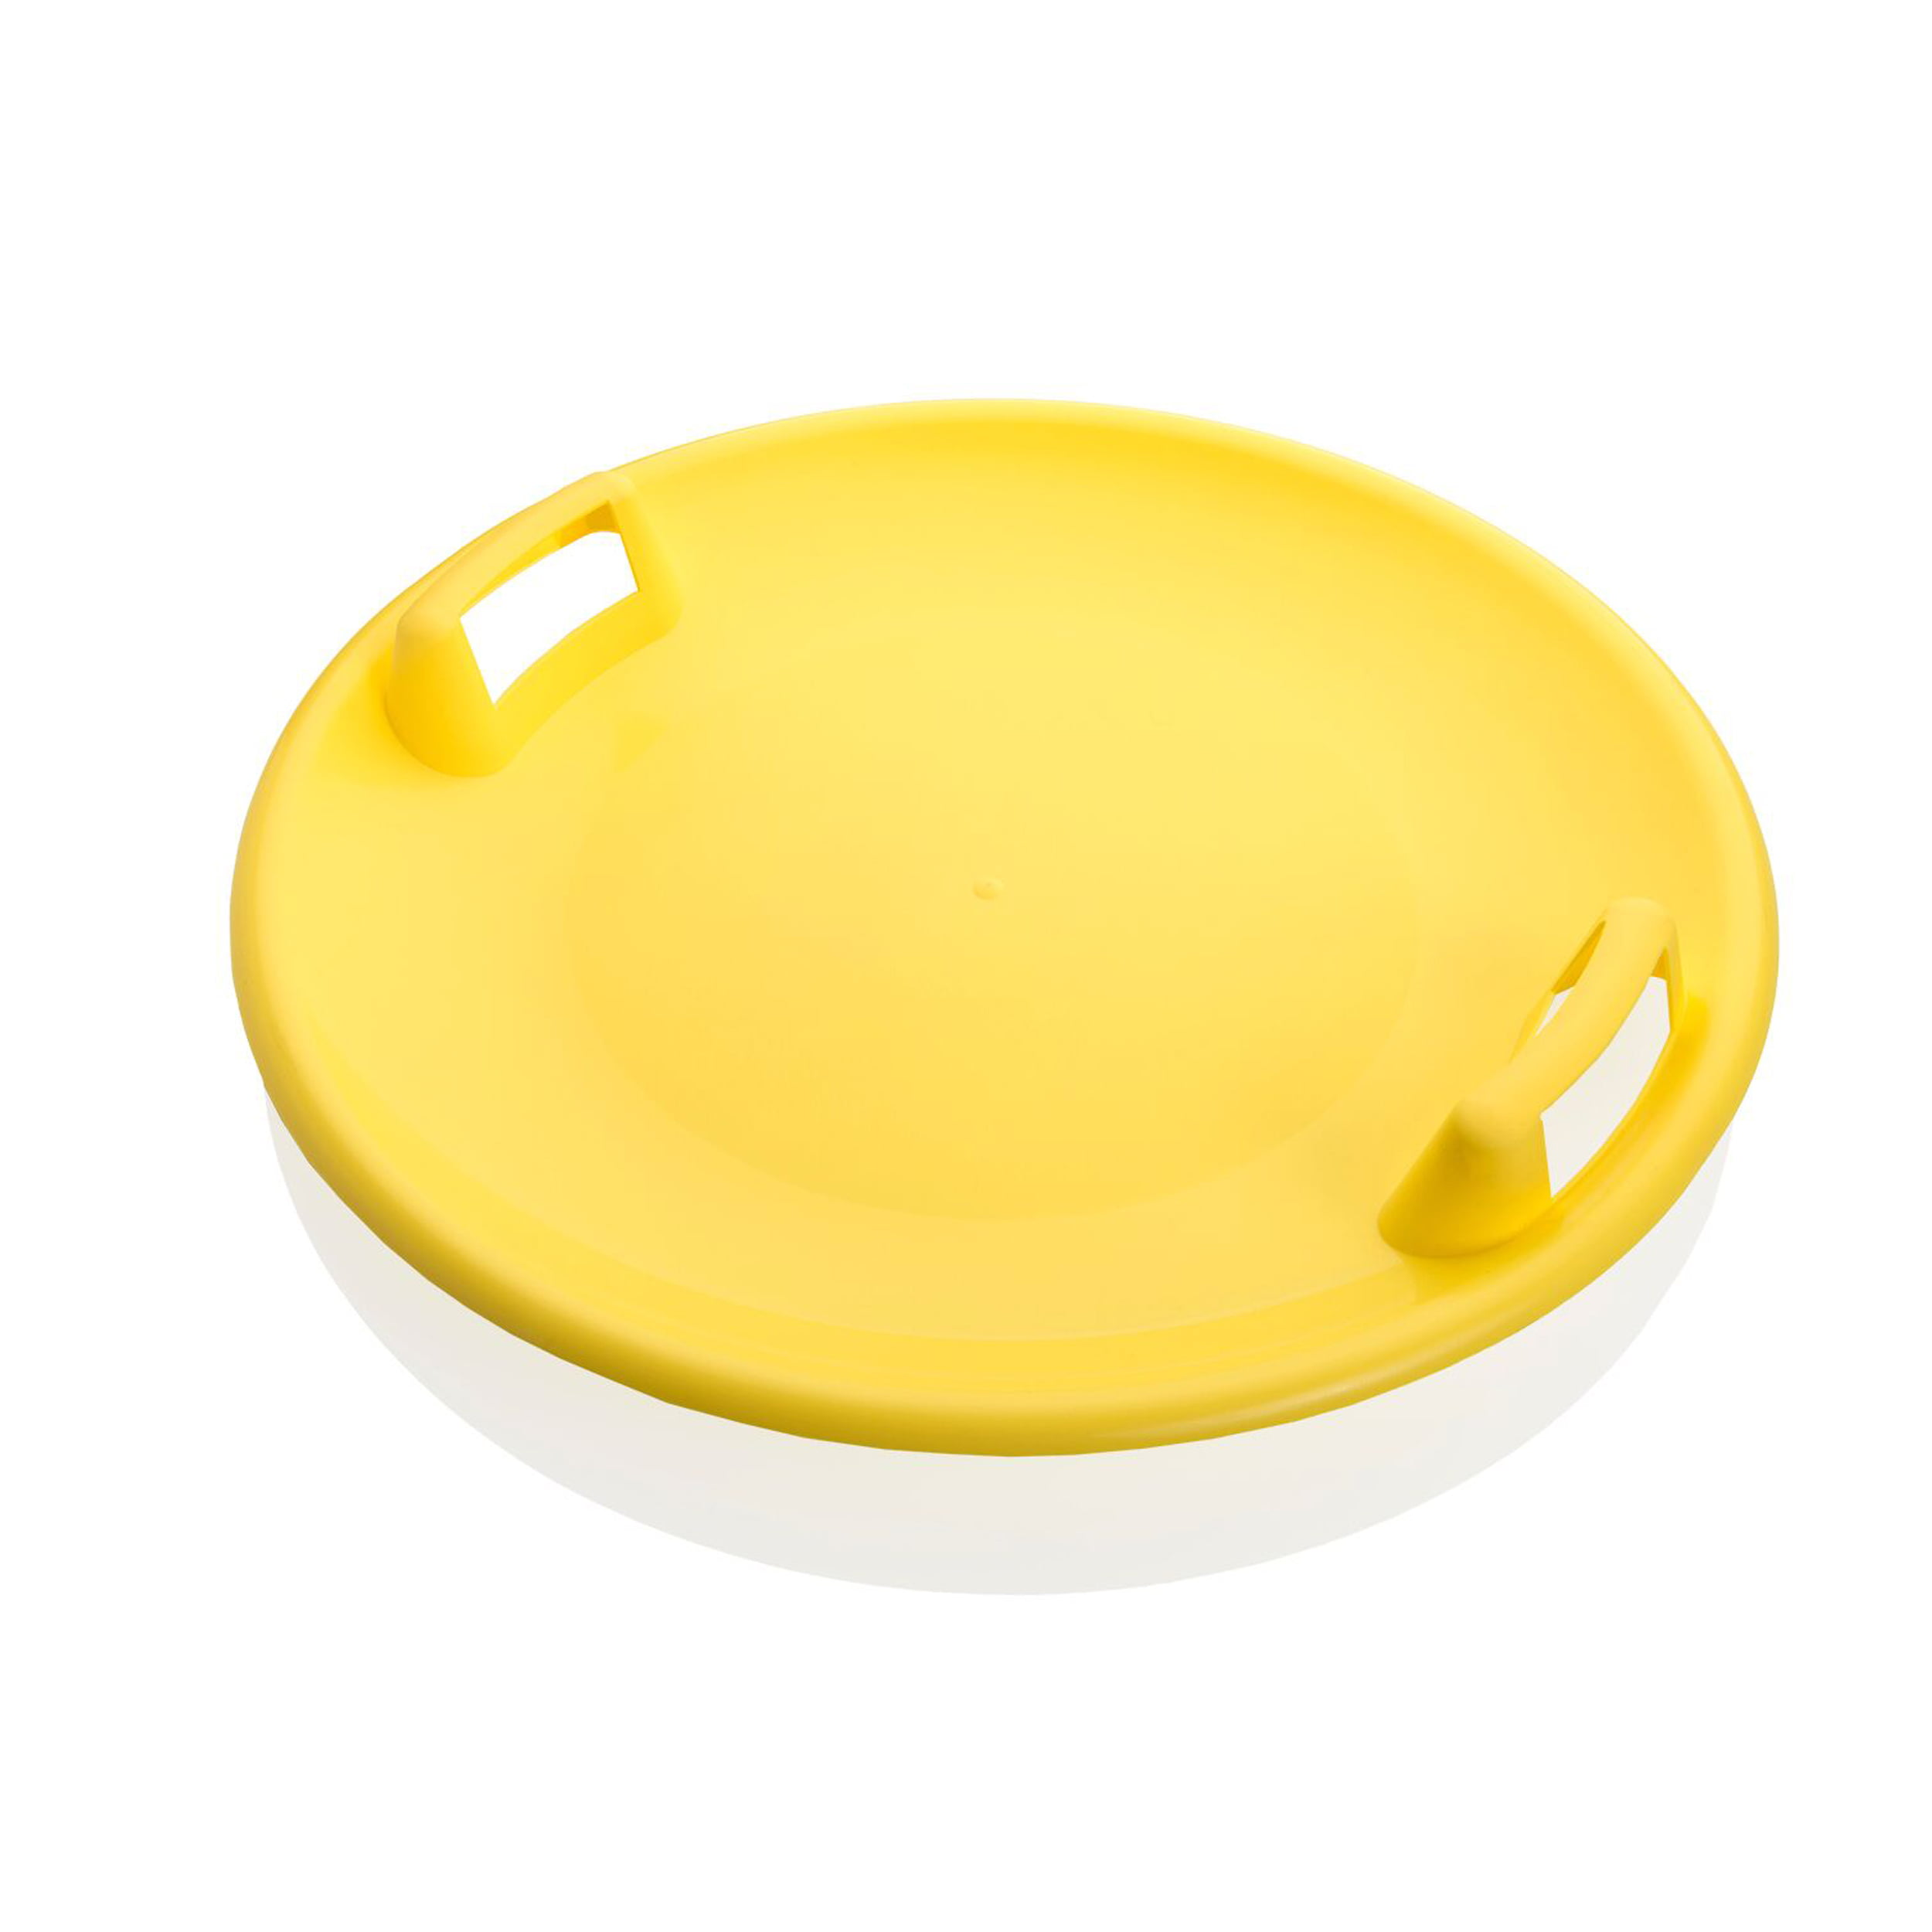 Superstar 24-Inch Saucer Snow Sled for Kids and Adults by Plastkon Yellow by Plastkon